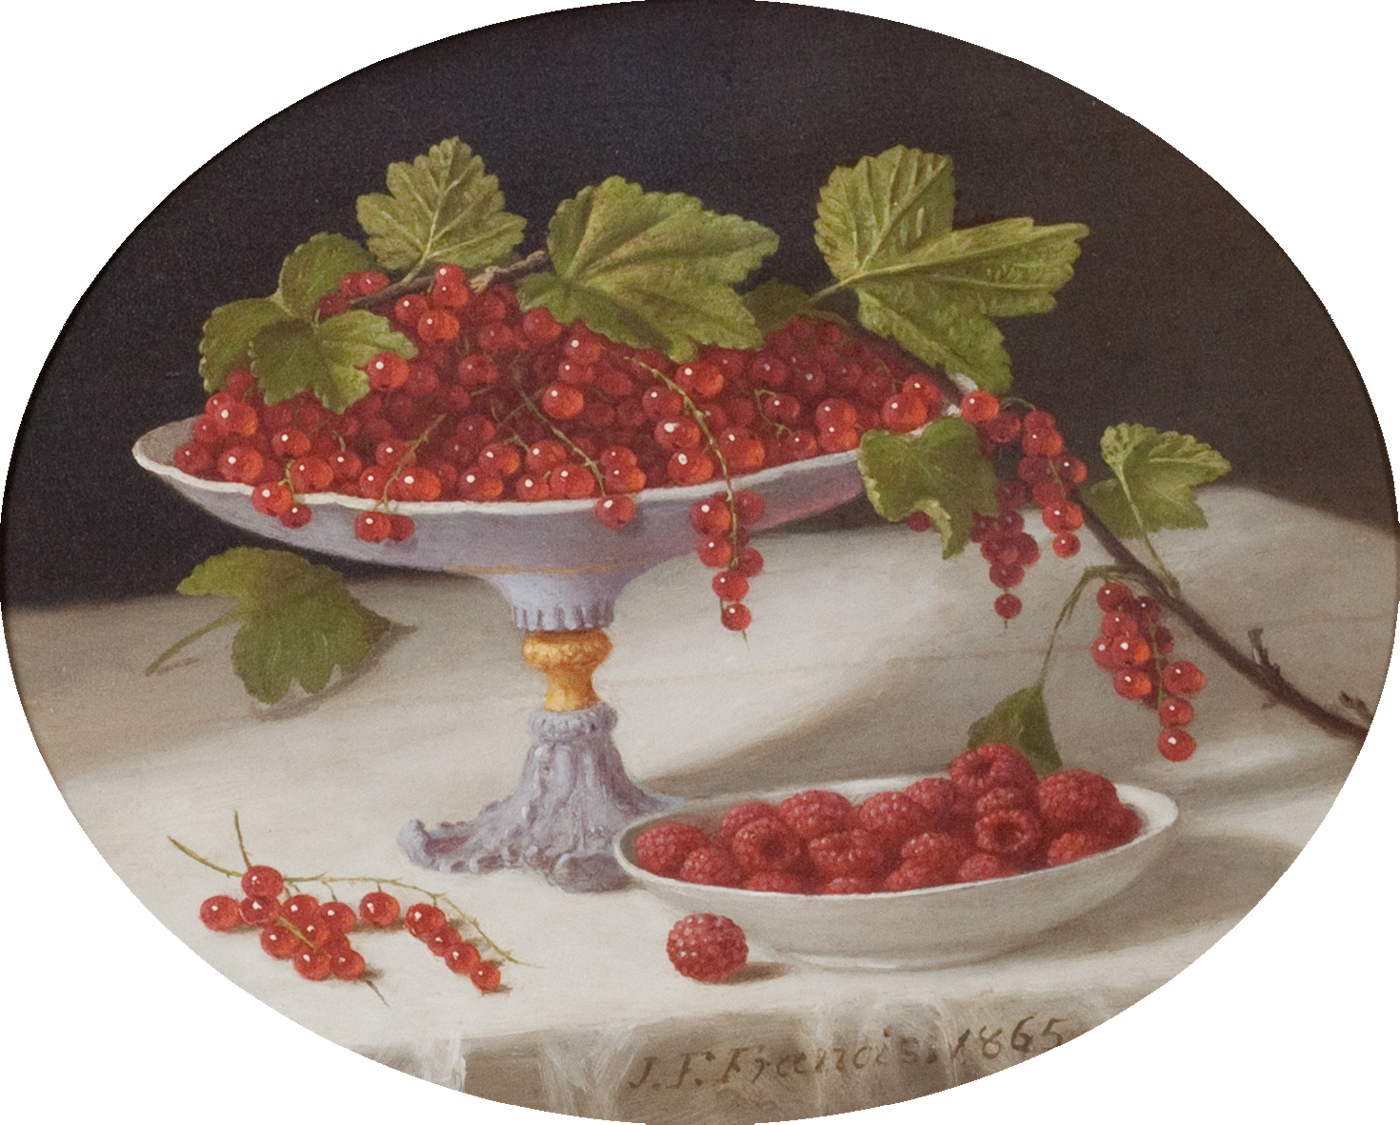 Still Life with Currants and Raspberries